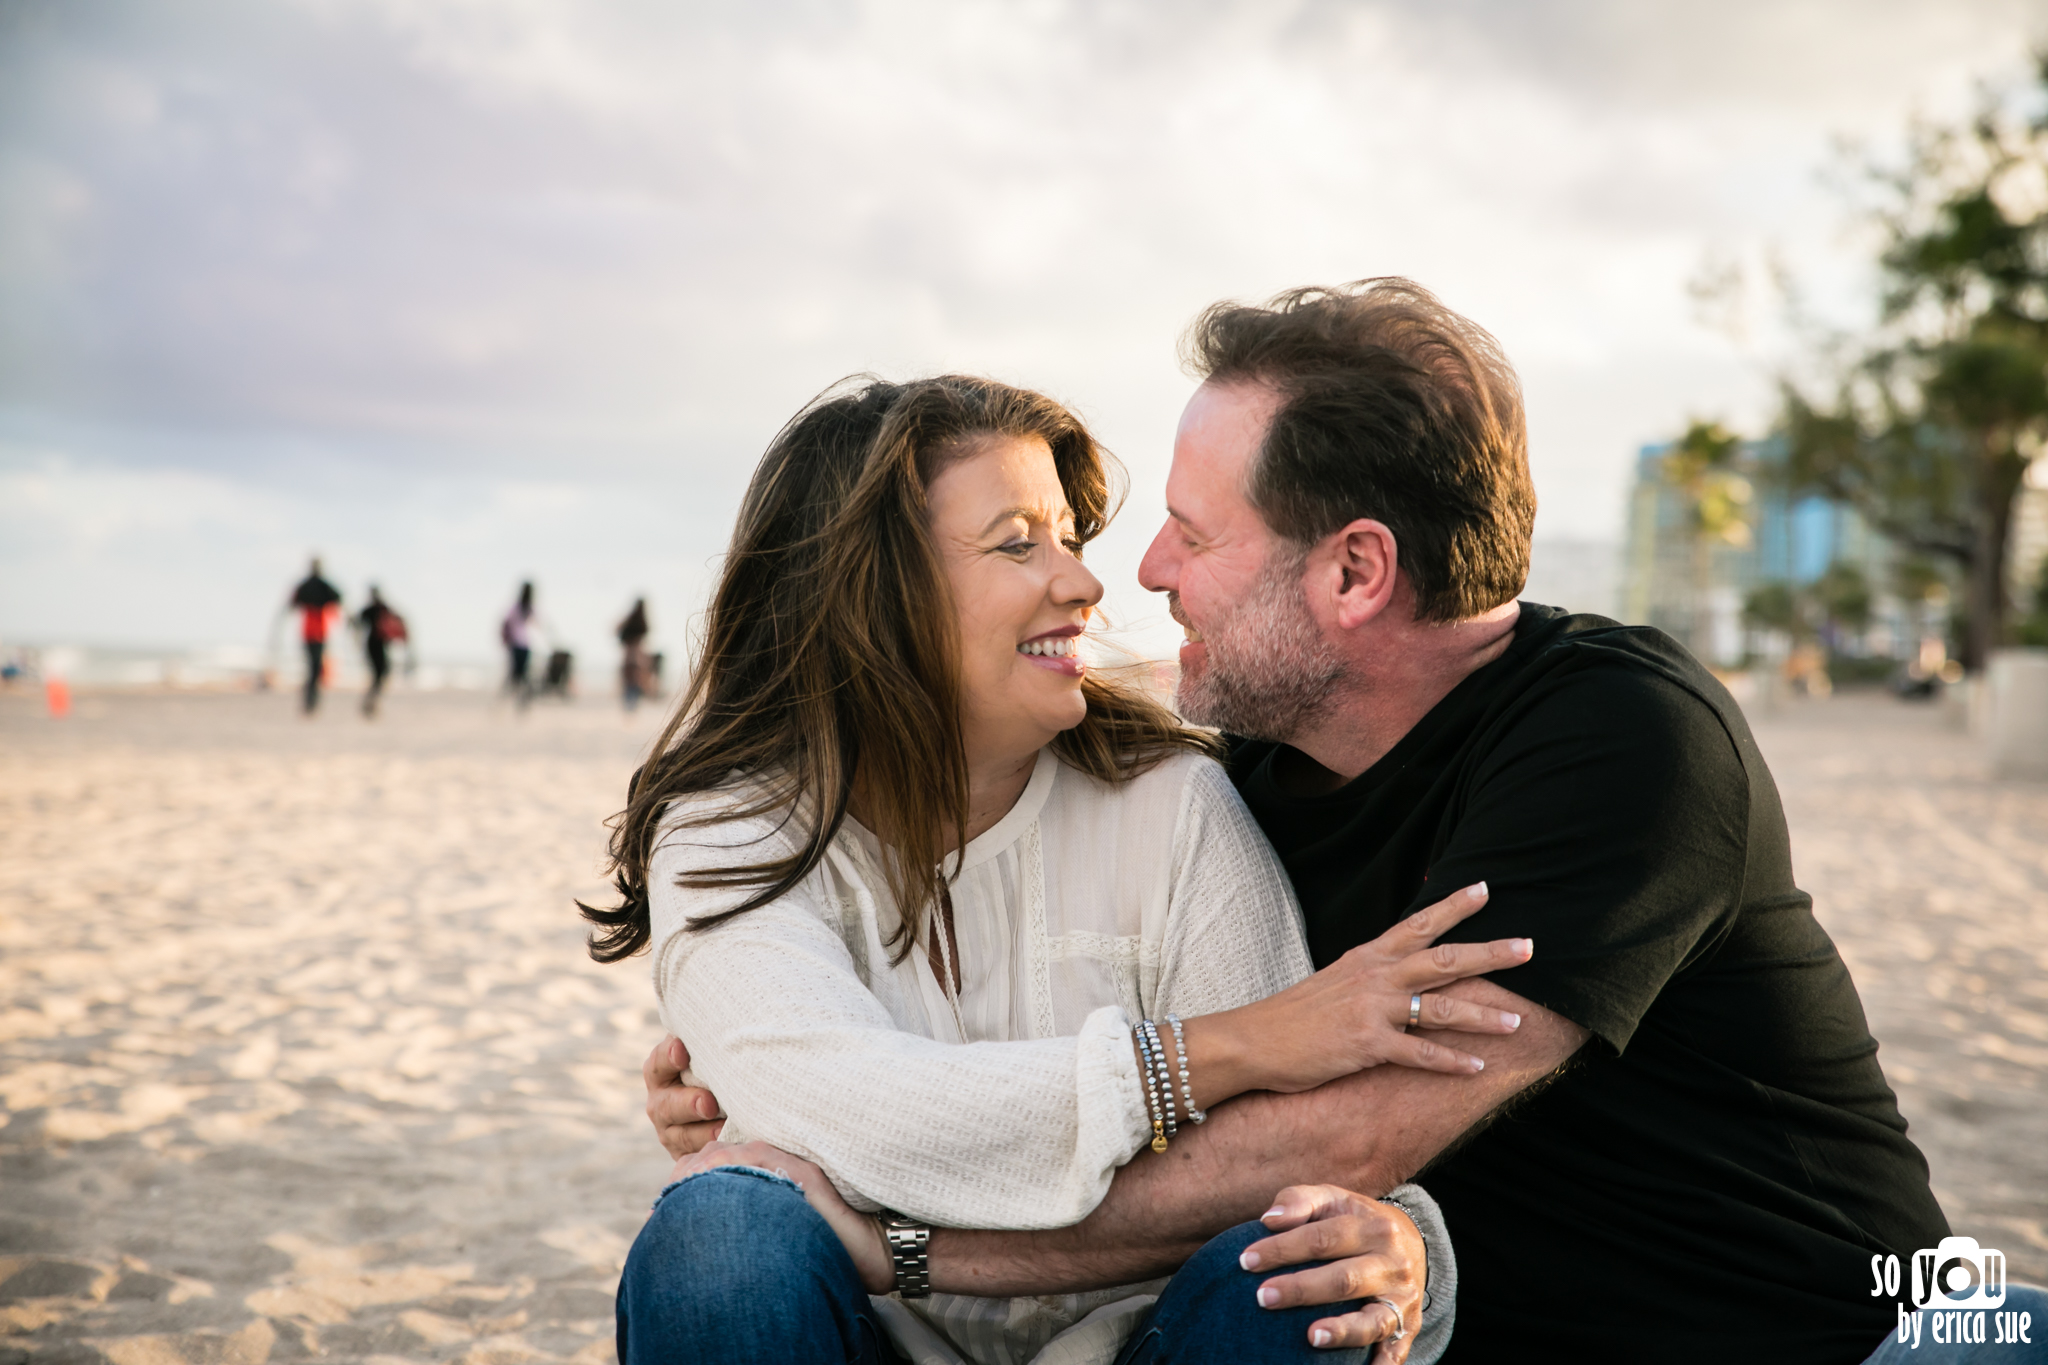 bar-mitzvay-pre-shoot-family-photography-so-you-by-erica-sue-ft-lauderdale-fl-florida-beach-8989.jpg